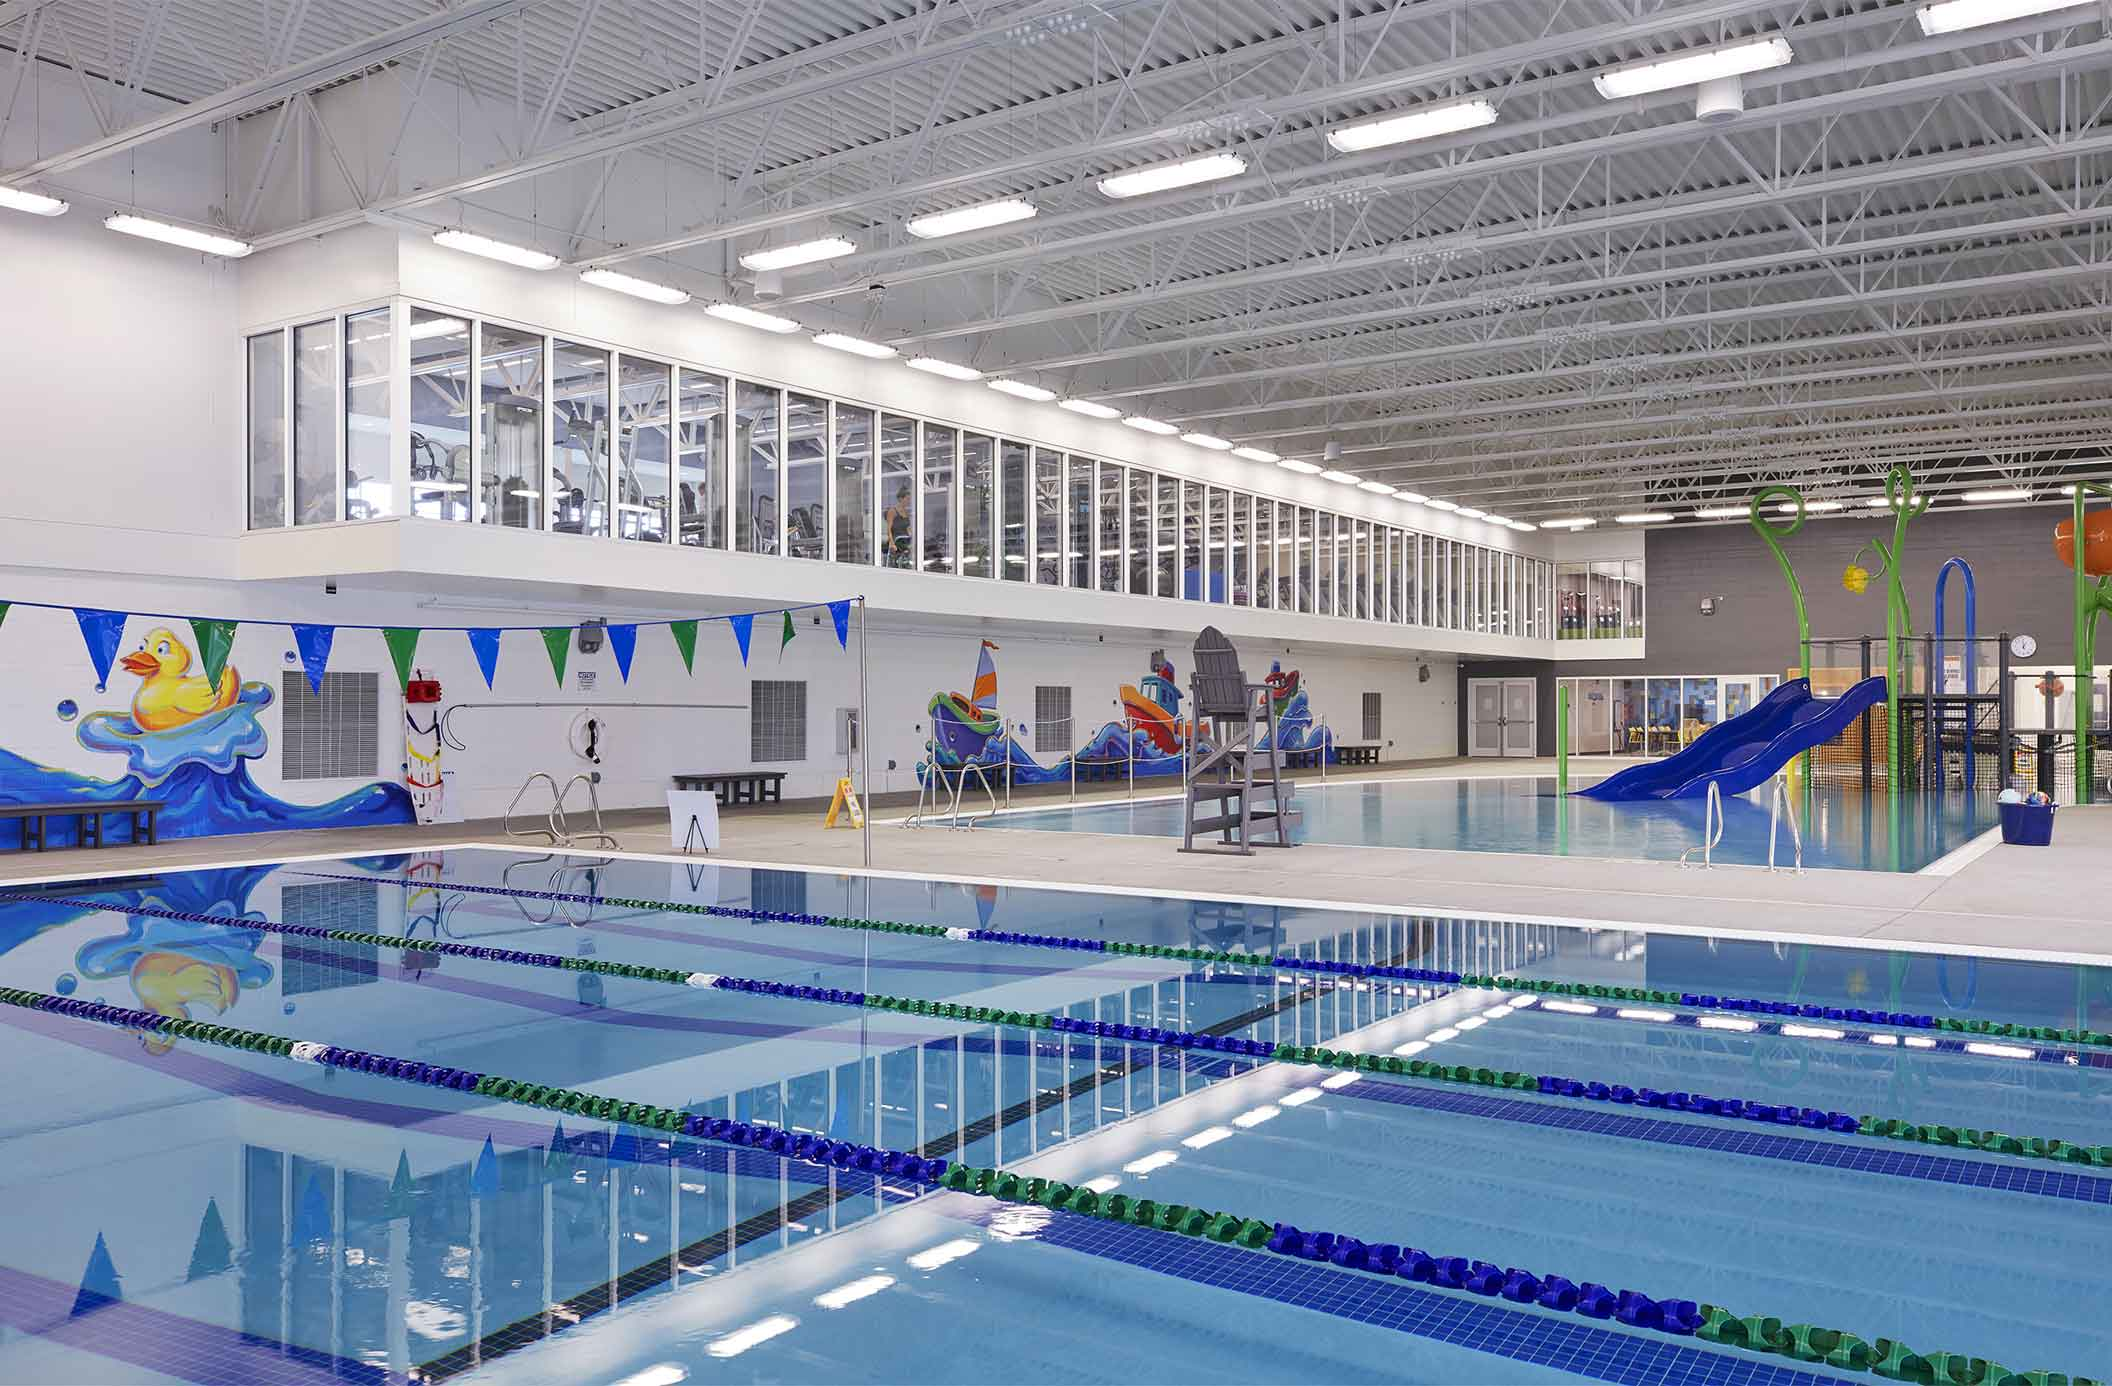 Phillips Aquatics Center